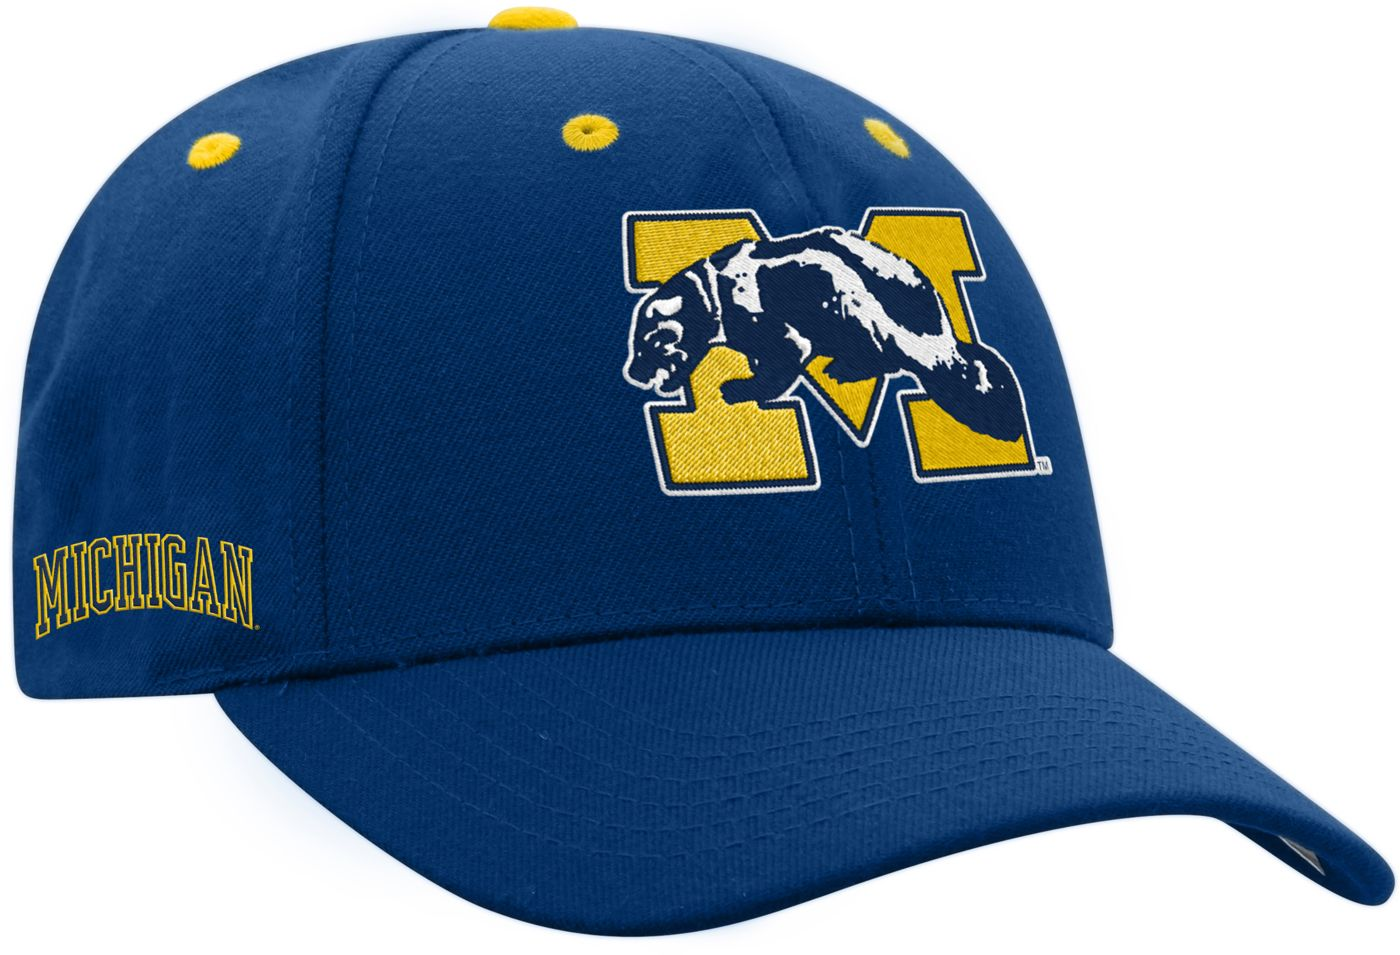 Top of the World Men's Michigan Wolverines Blue Retro Triple Threat Adjustable Hat